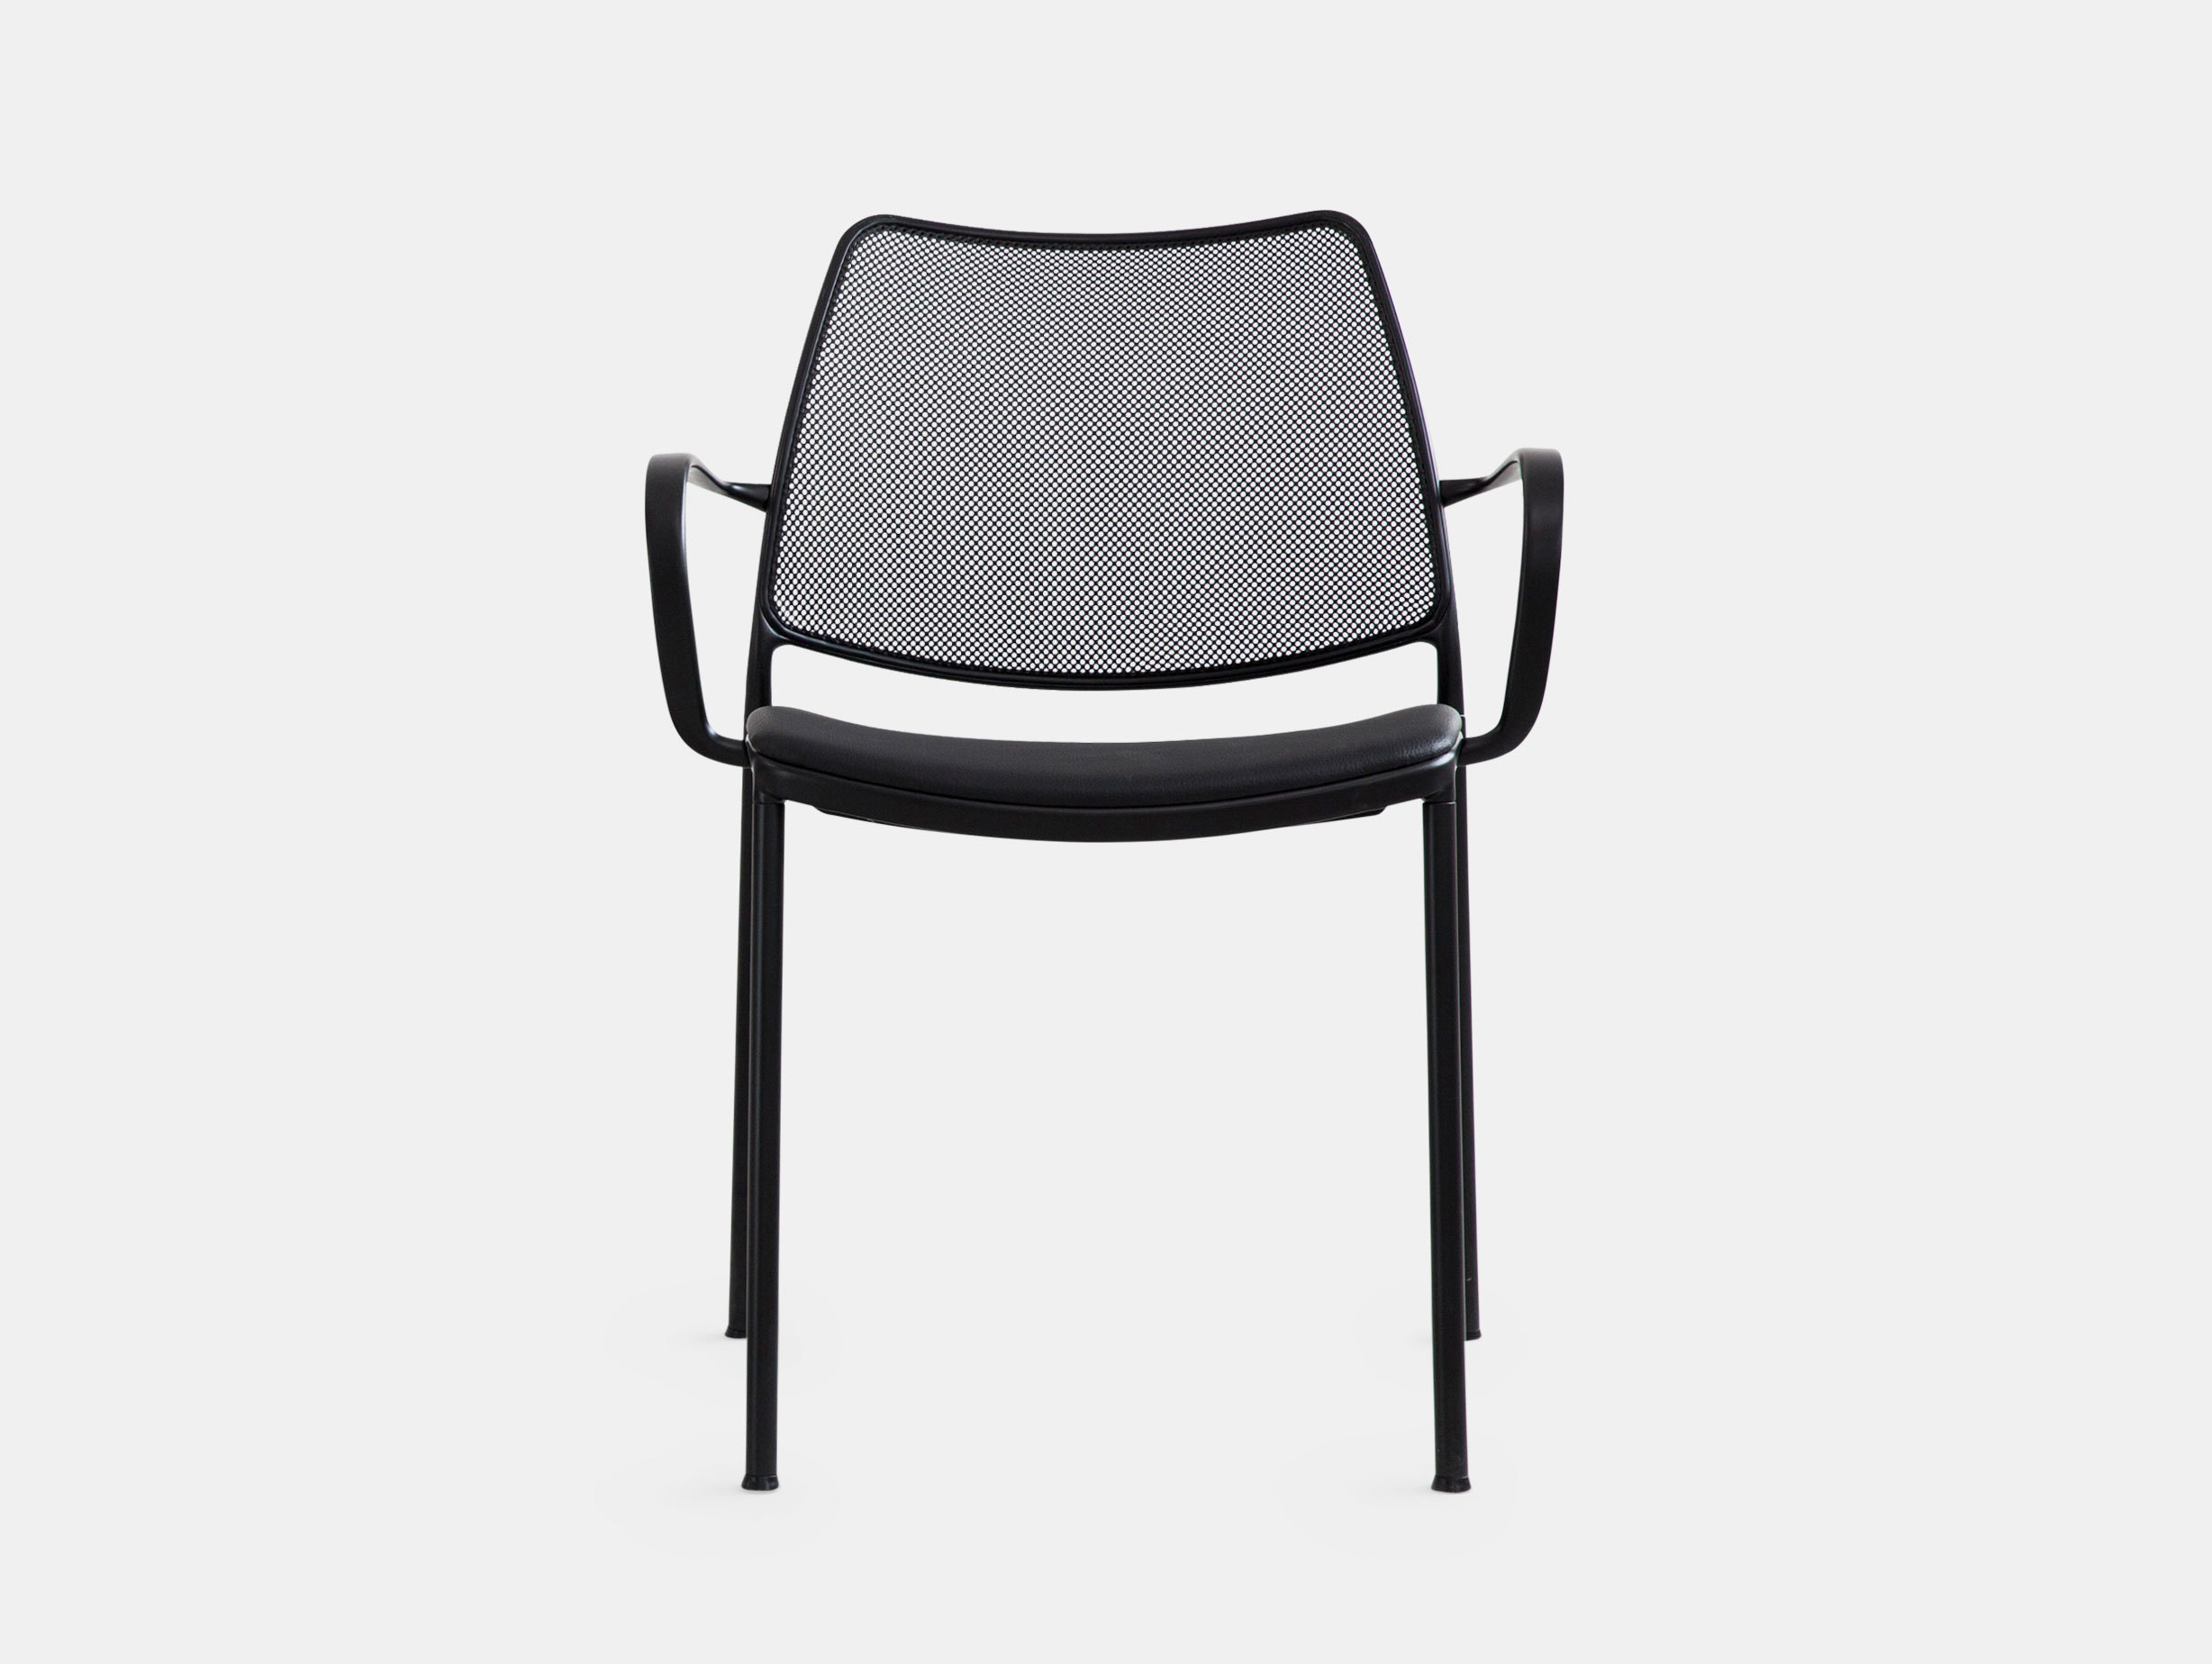 Gas Chair image 1